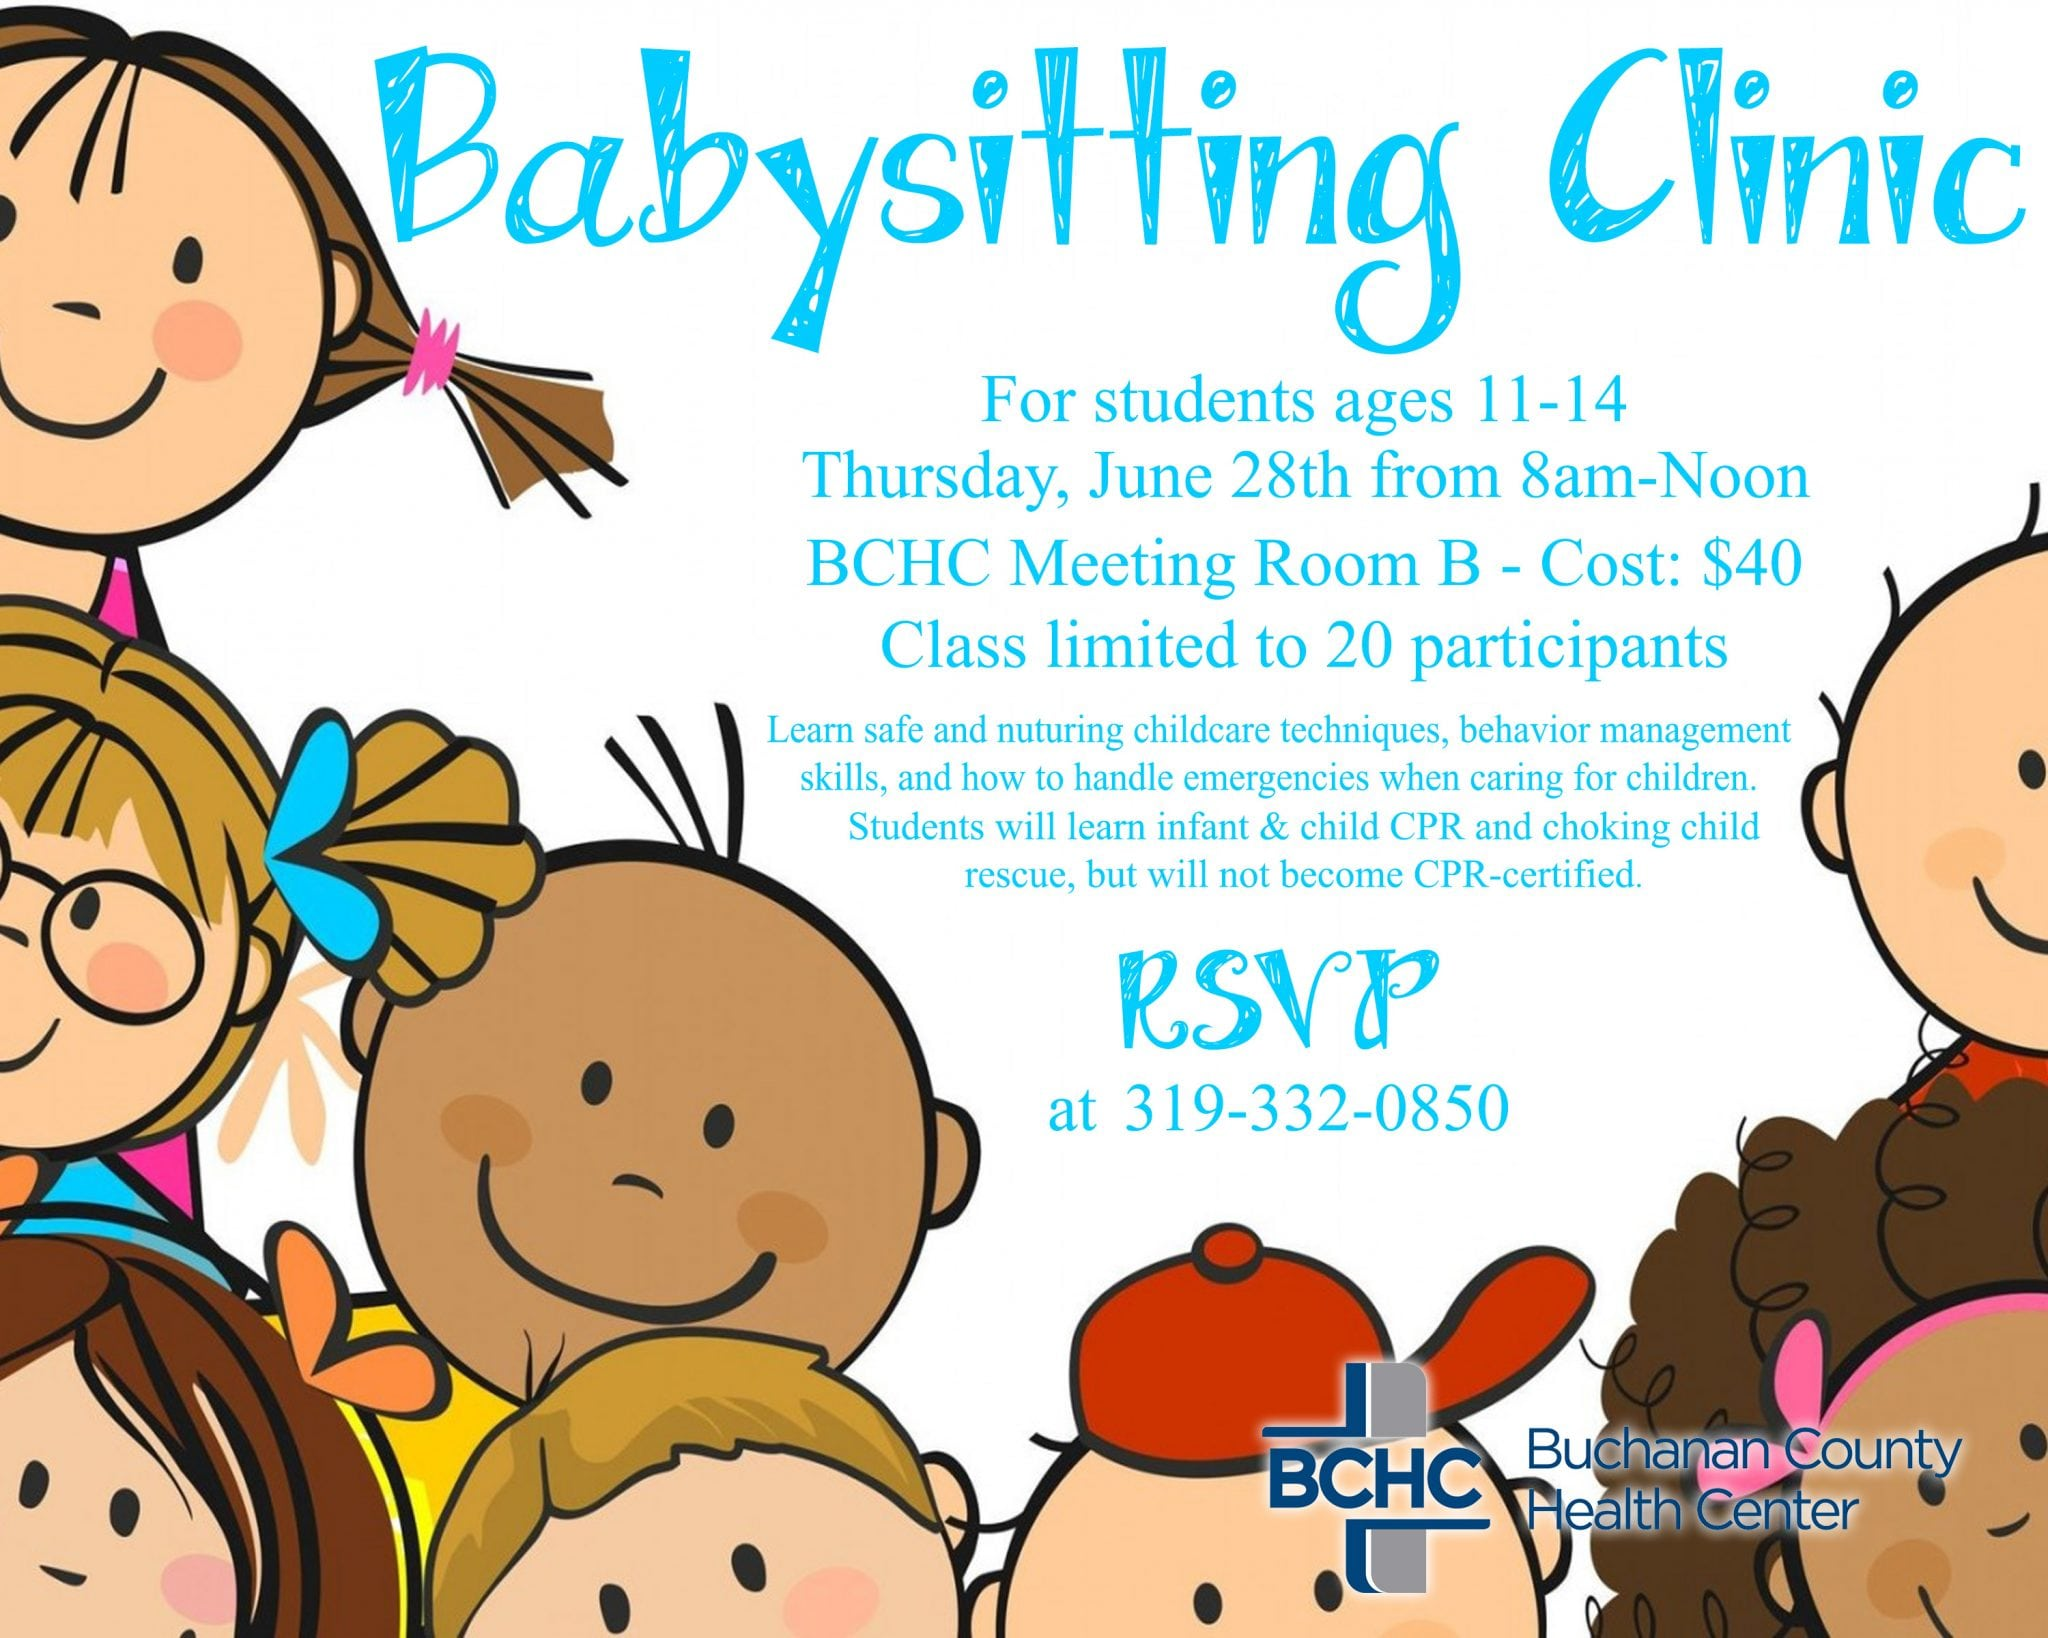 Babysitting Clinic To Be Offered At Bchc On June 28th Buchanan